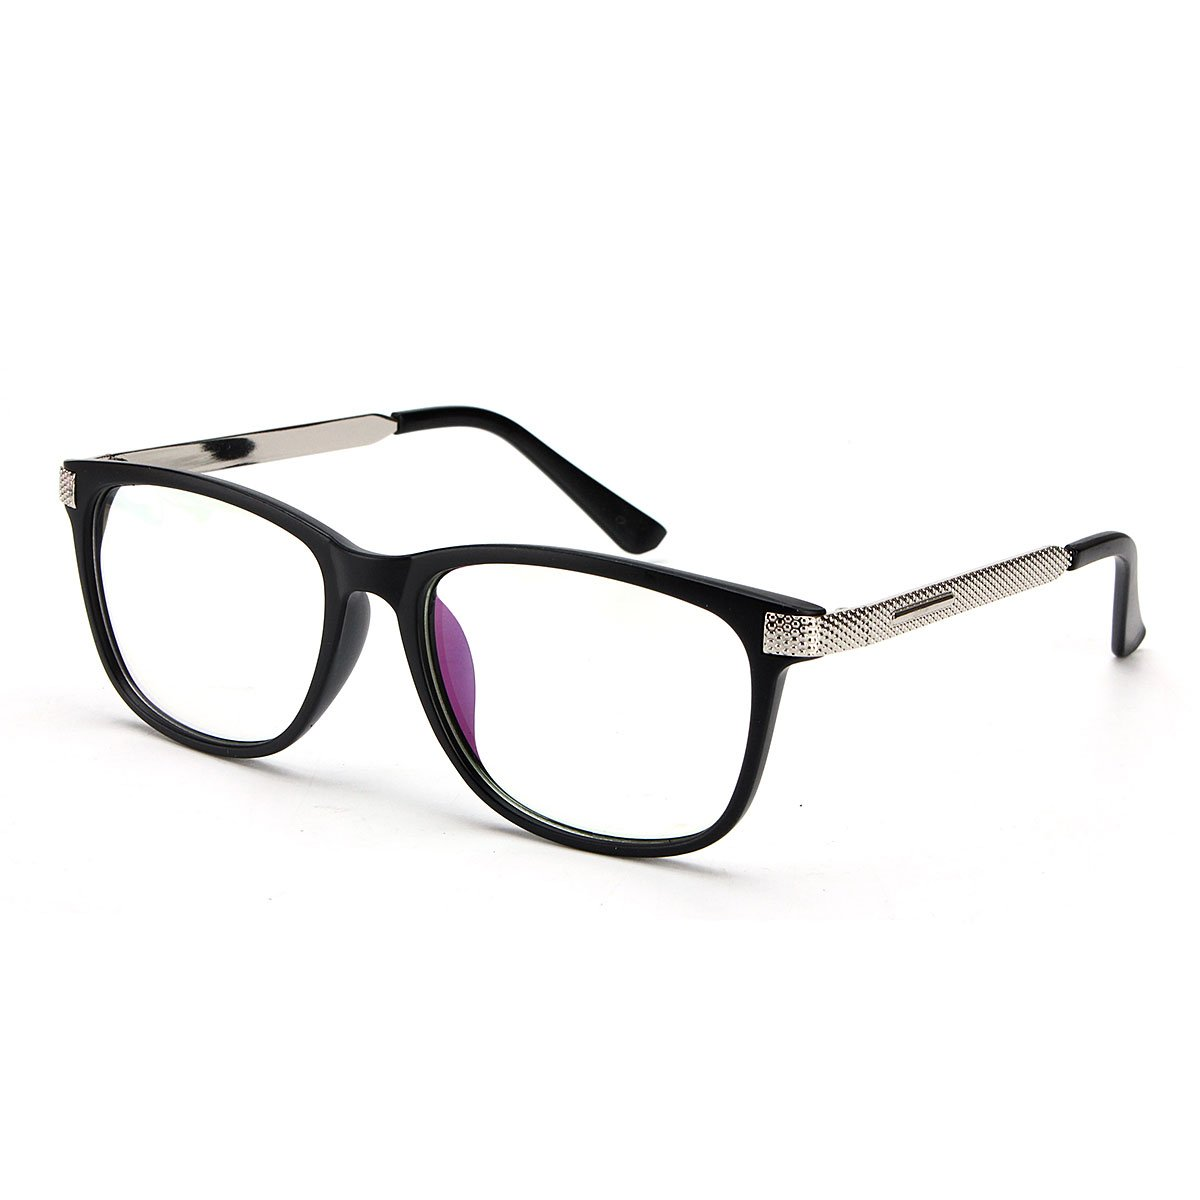 Unisex Women Men Retro Full-Rim Frame Clear Lens Metal Plain Glasses Black